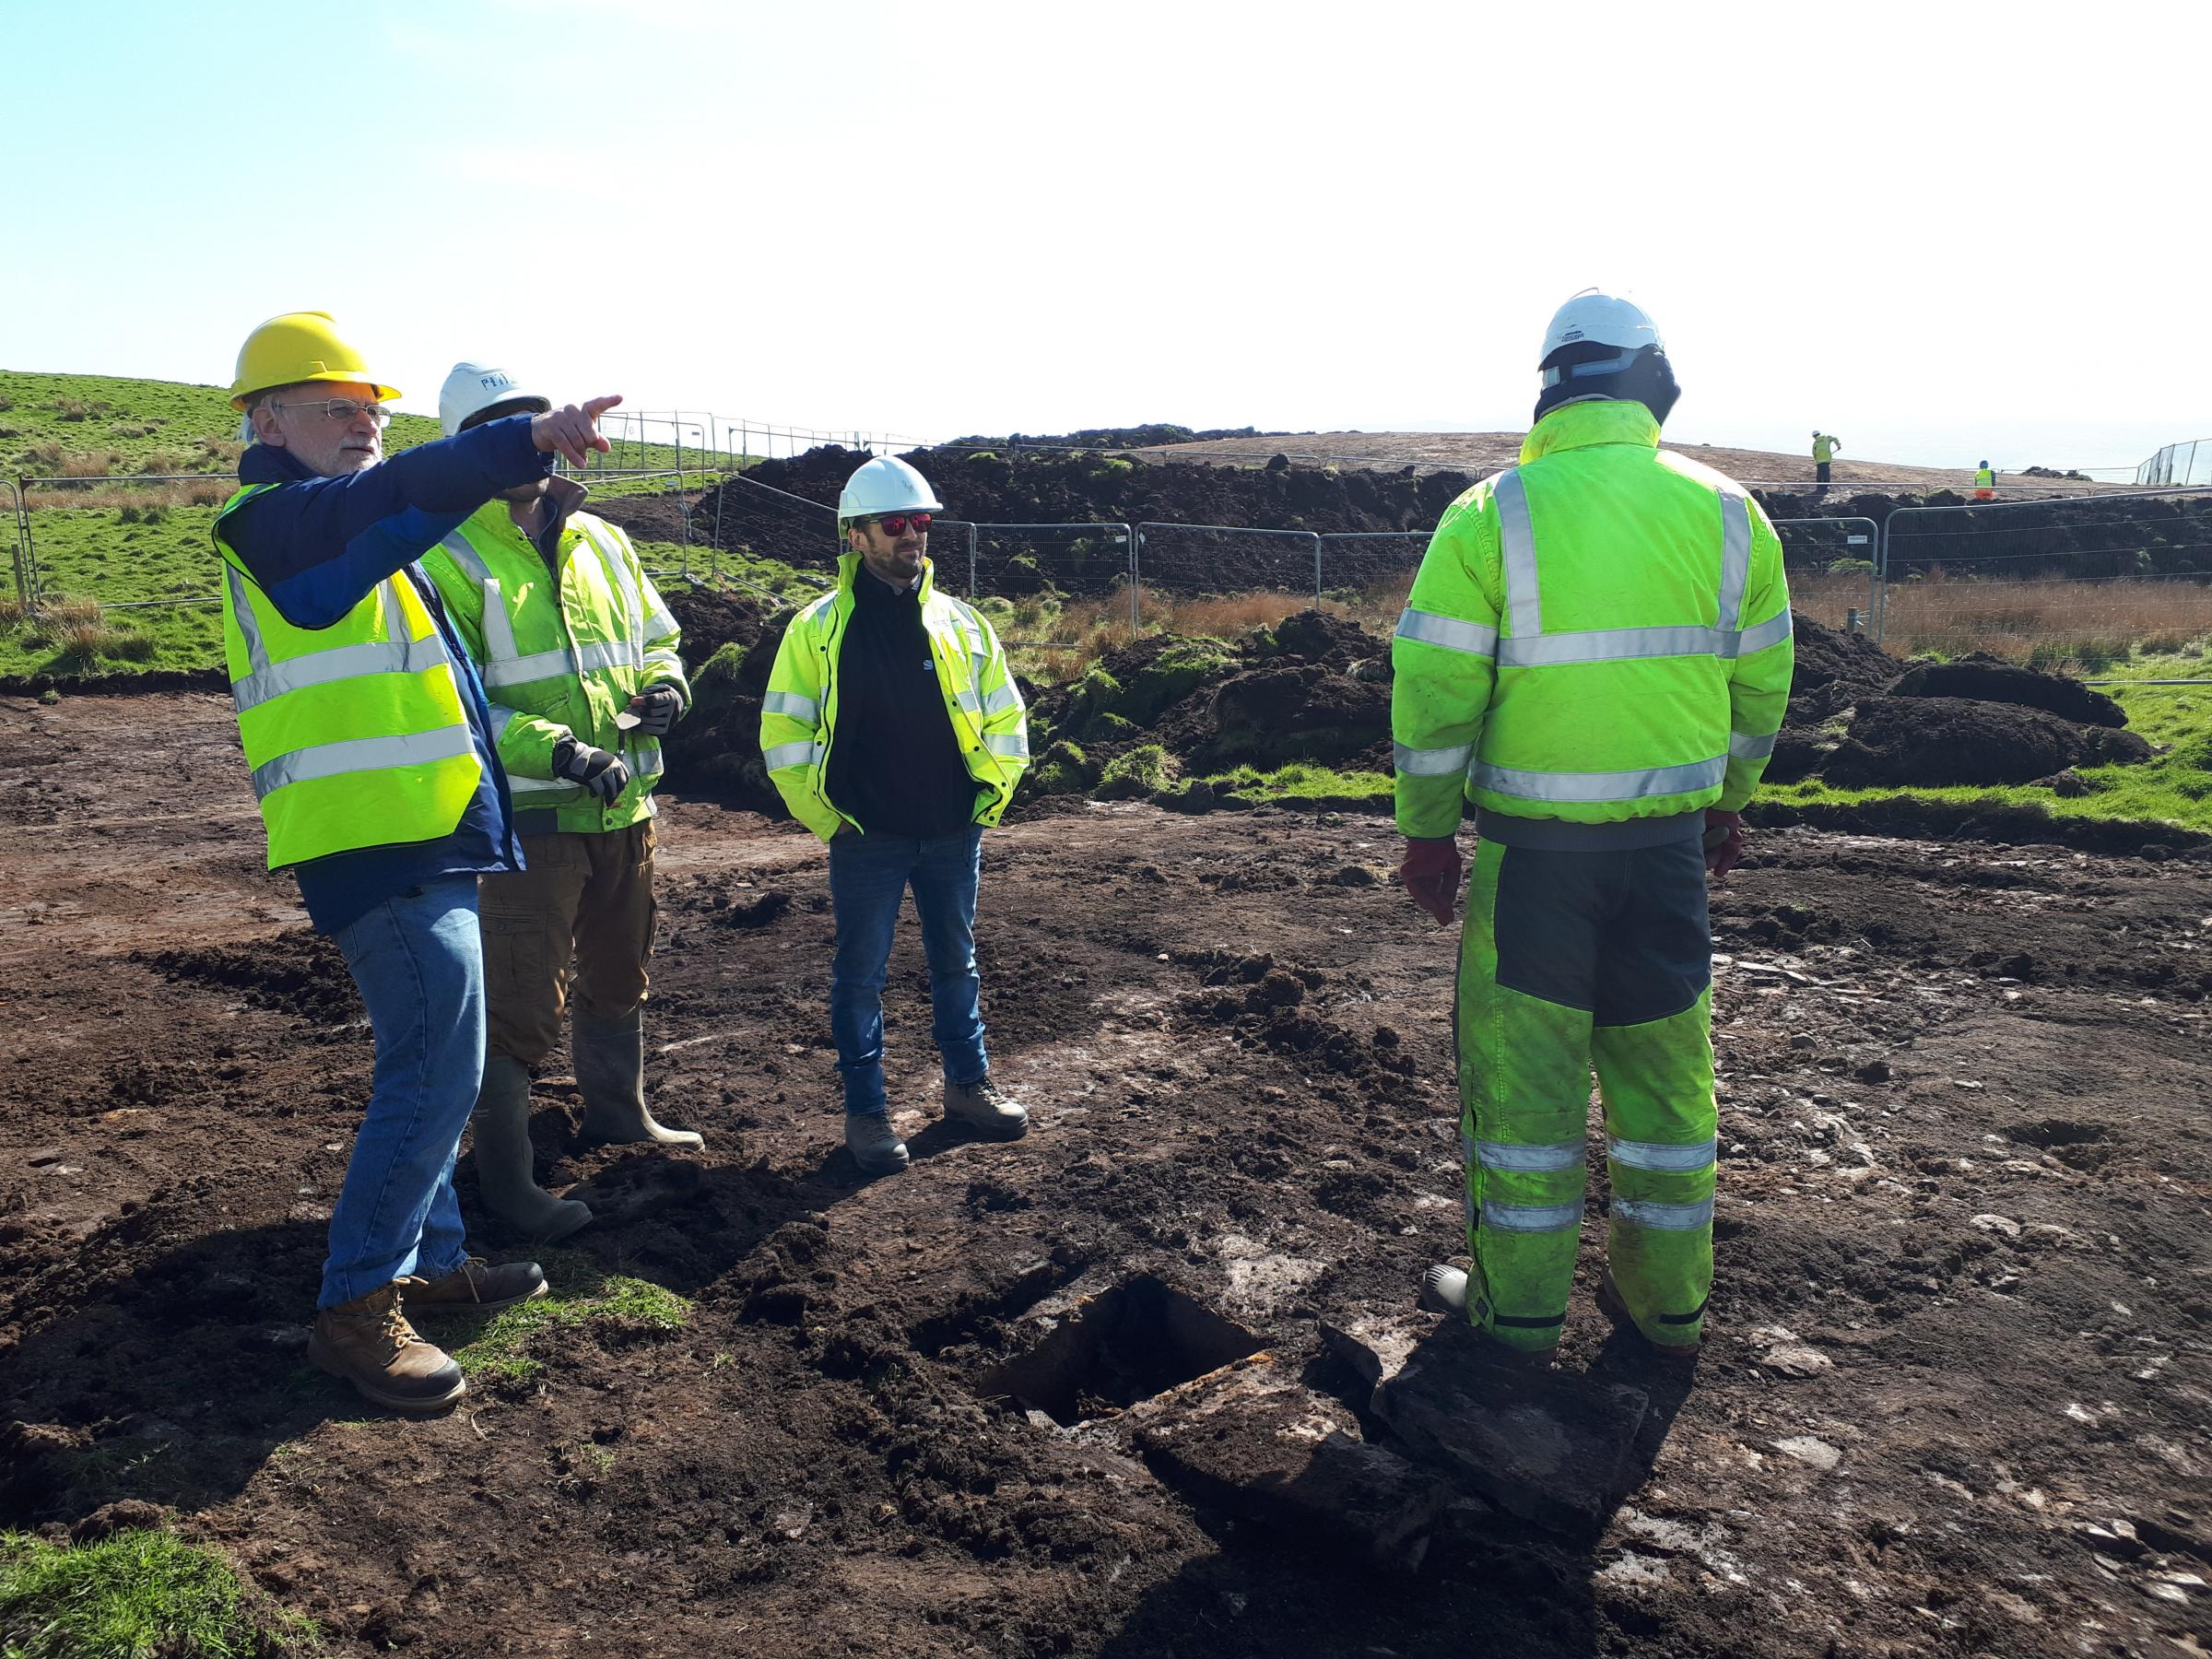 Pete Higgins, ORCA archaeology senior project manager, points out archaeological sites visible from the dig location on Orkney